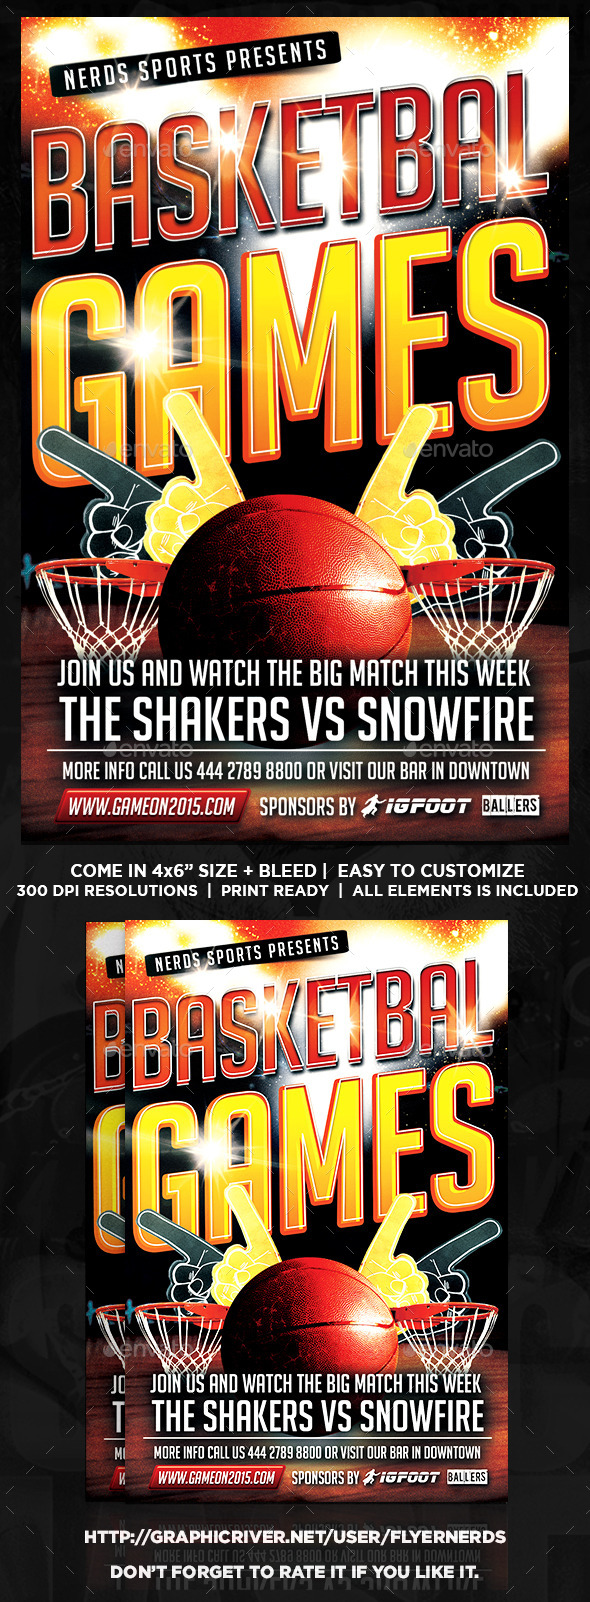 Game On Basketball Sports Flyer